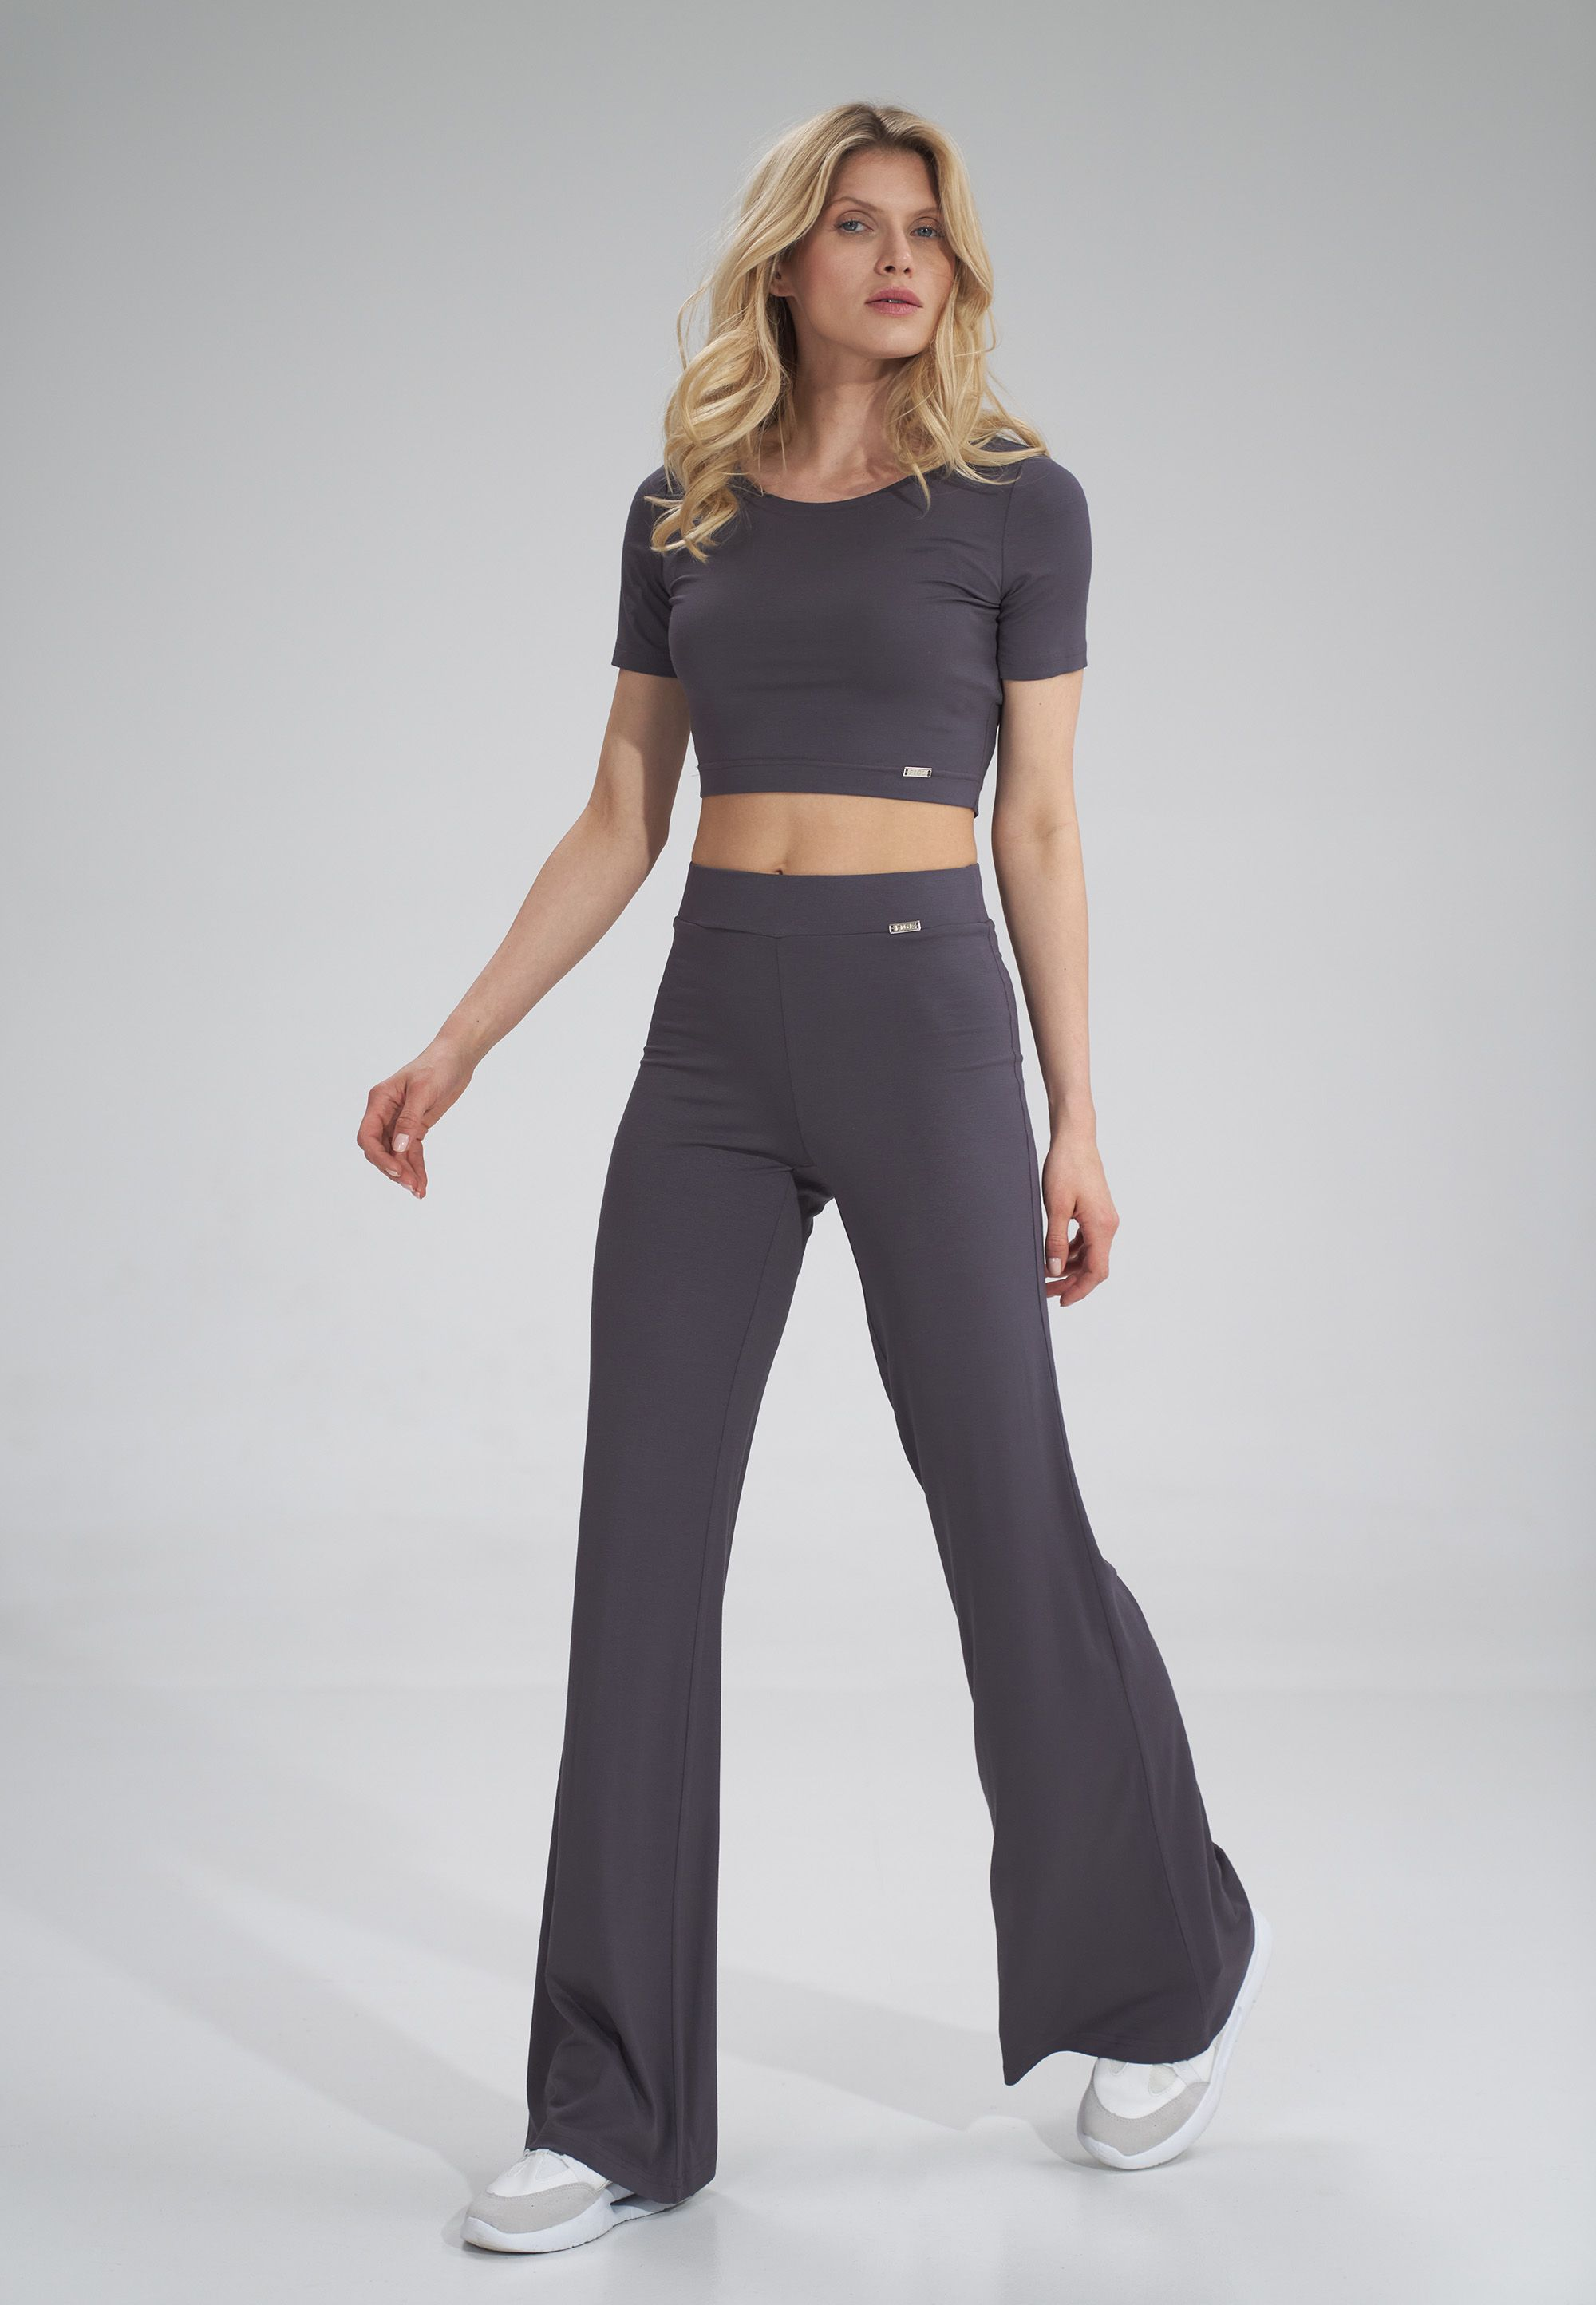 Crop top with short sleeves